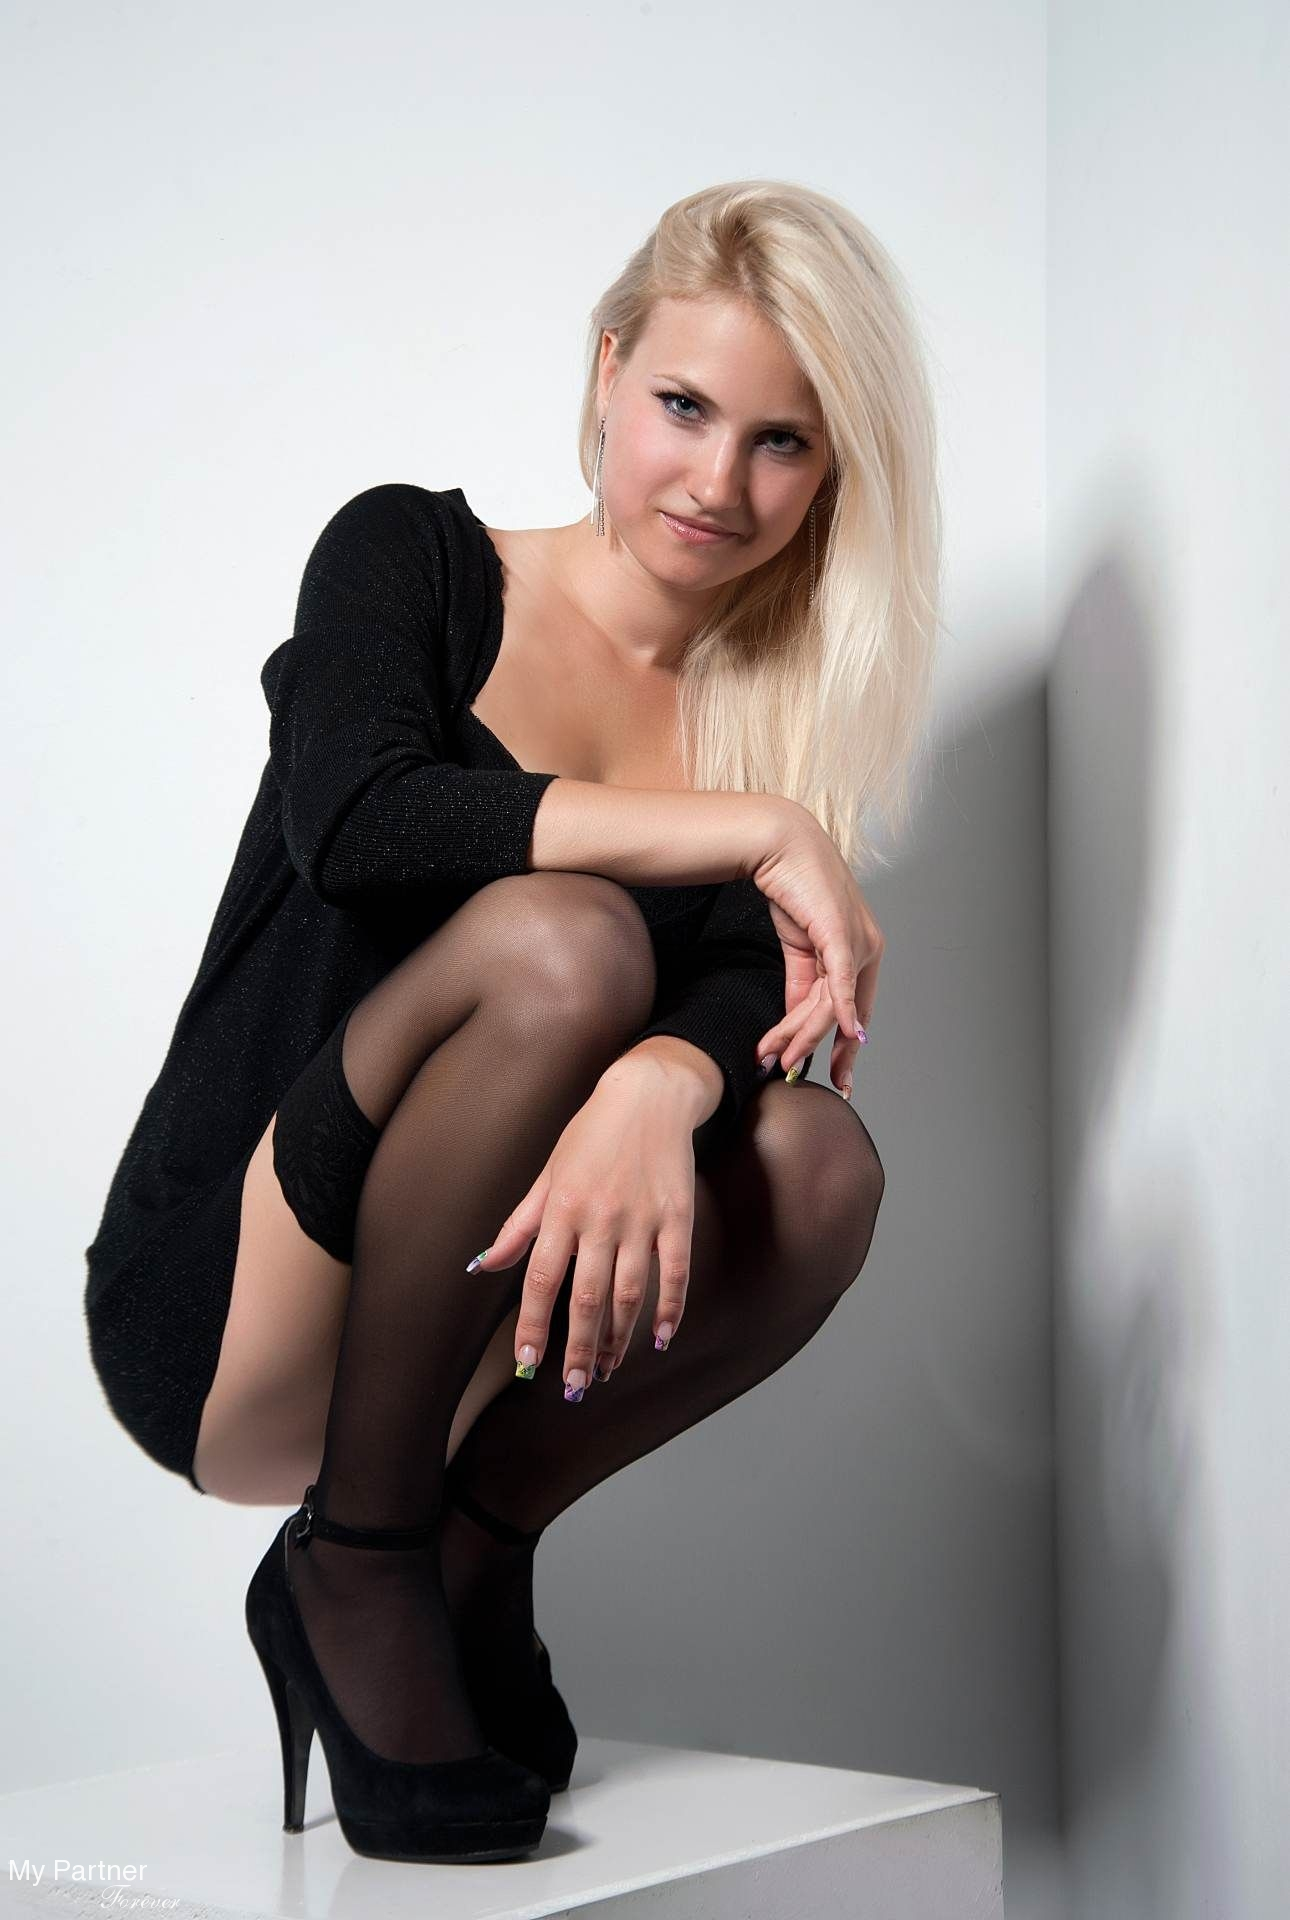 saucier singles dating site Are you looking for saucier older women look through the newest members below and you may just find your ideal partner start a conversation and arrange to meet up tonight.